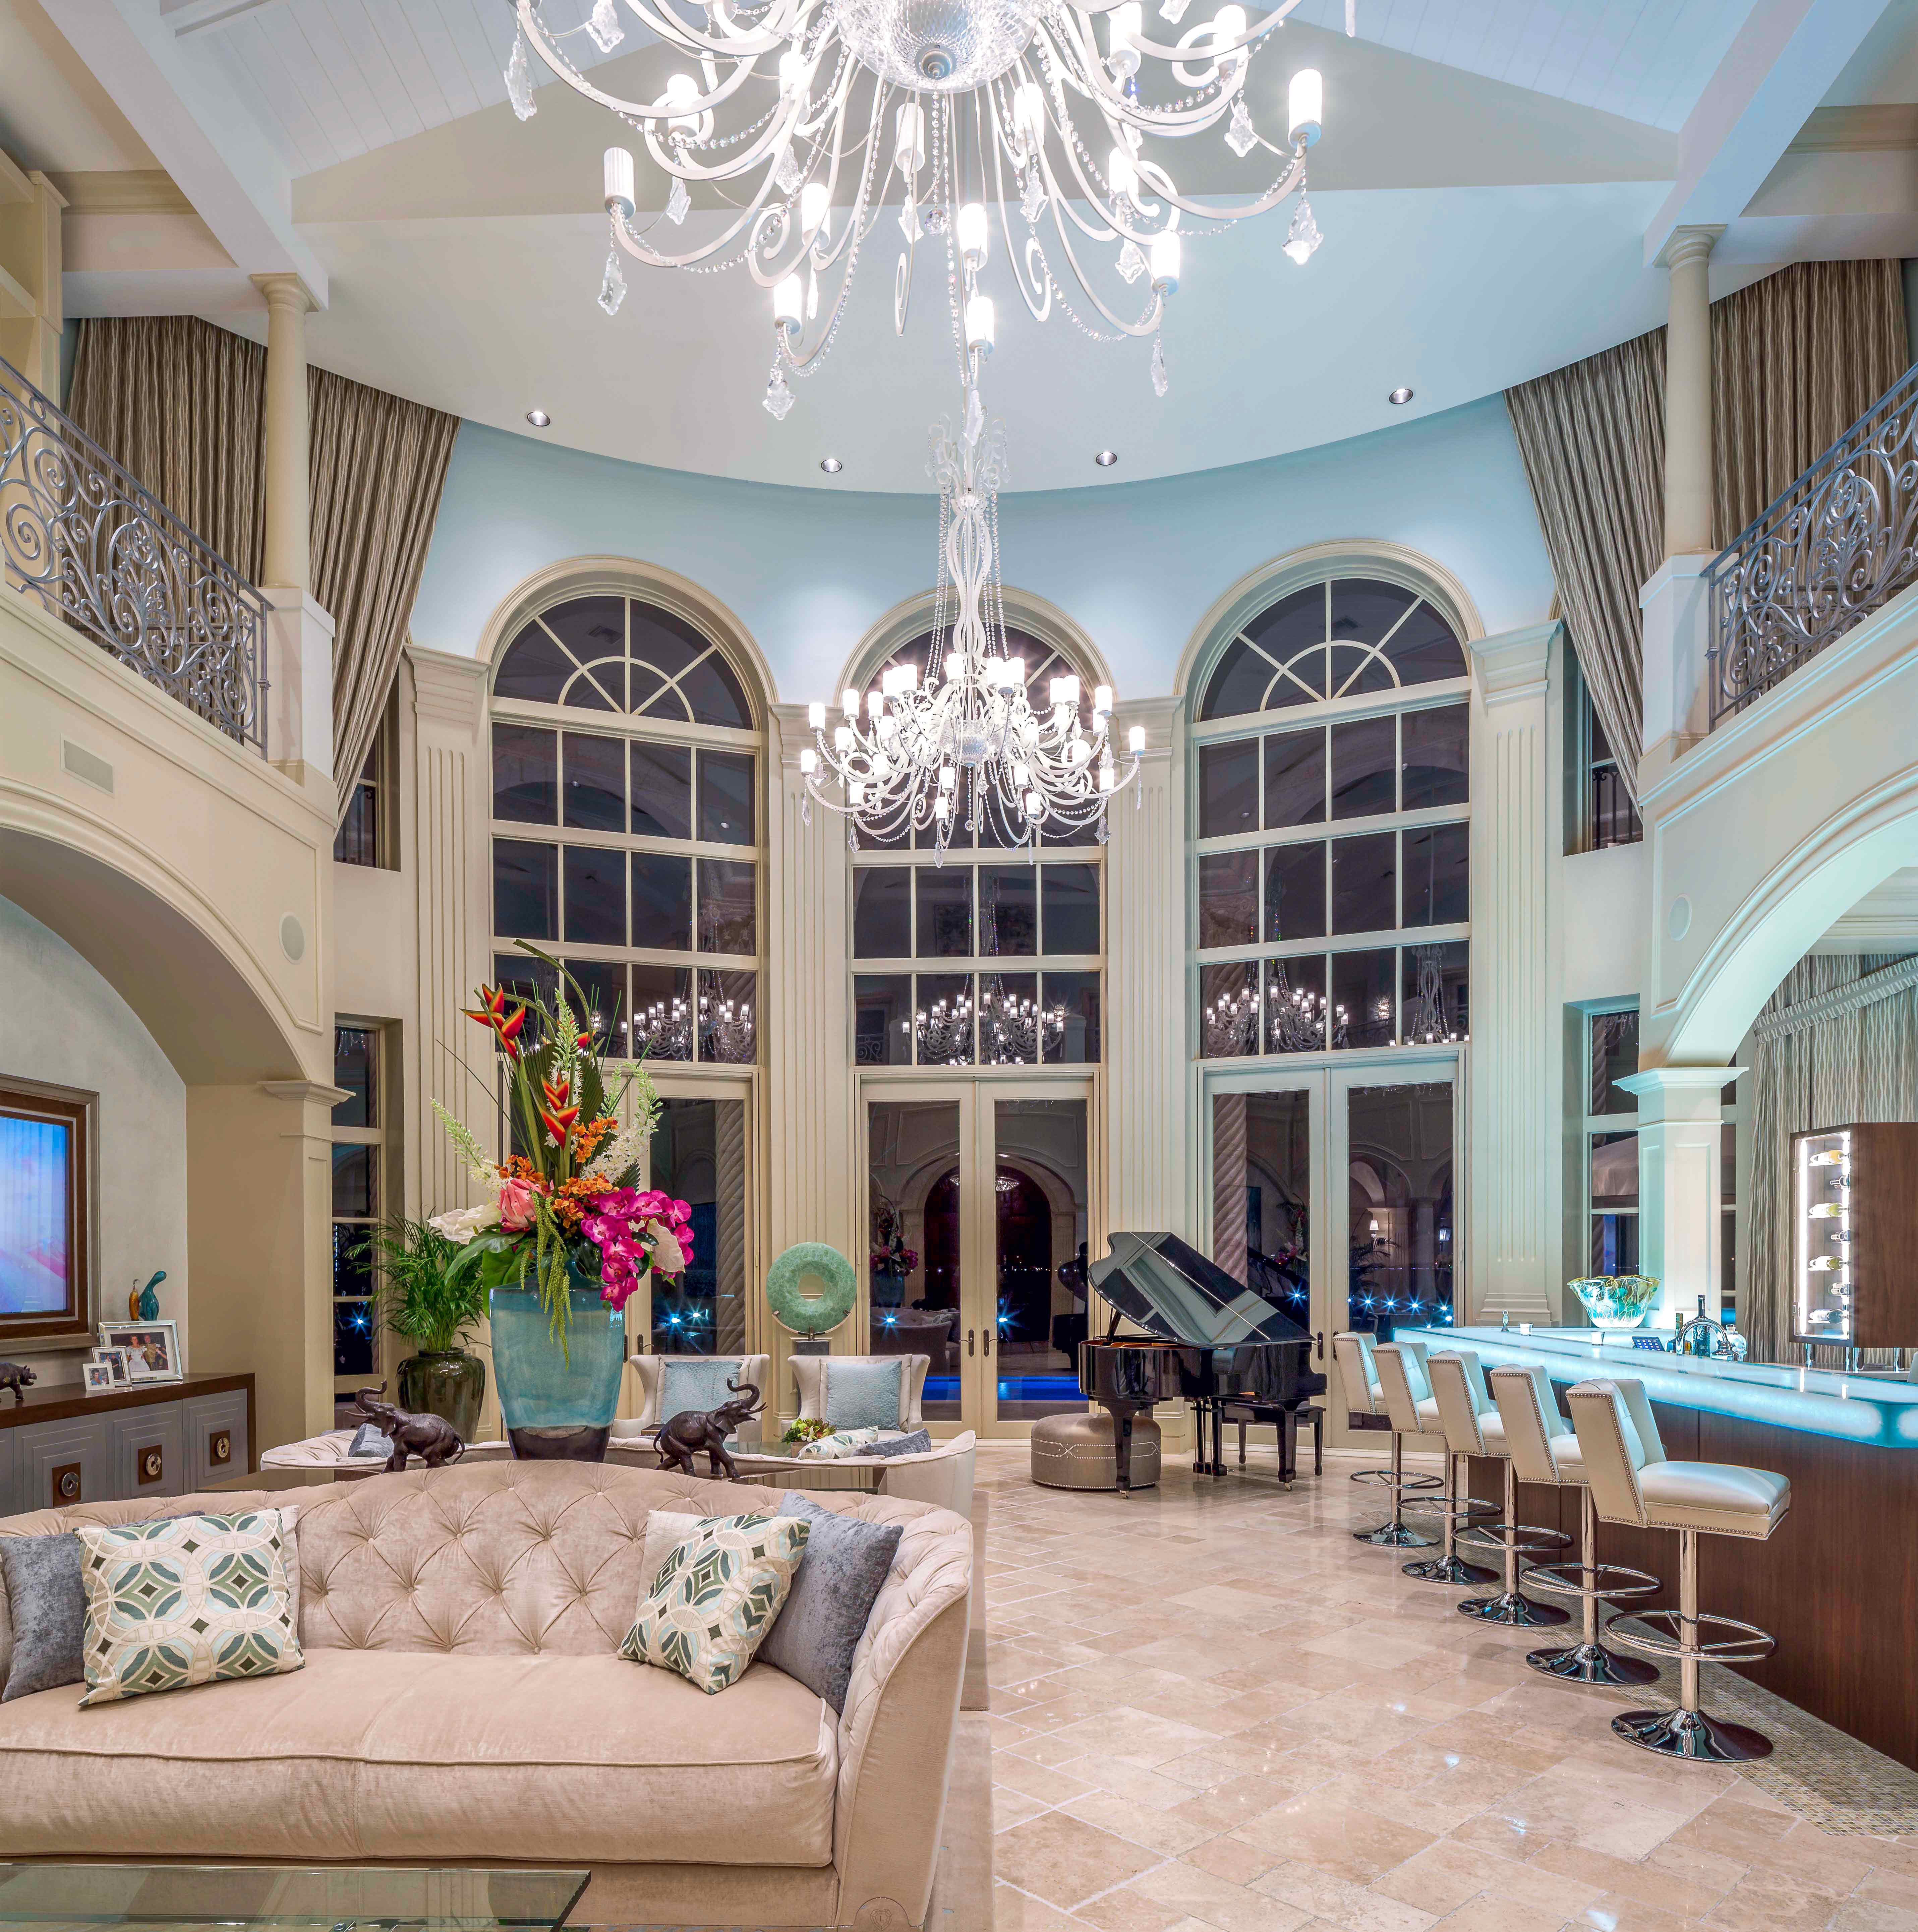 We Are Zelman Style Interiors. We Are ZLMN. Contact Us Today At (954)  718 6100 Or By Emailing Eileen@zelmanstyle.com.